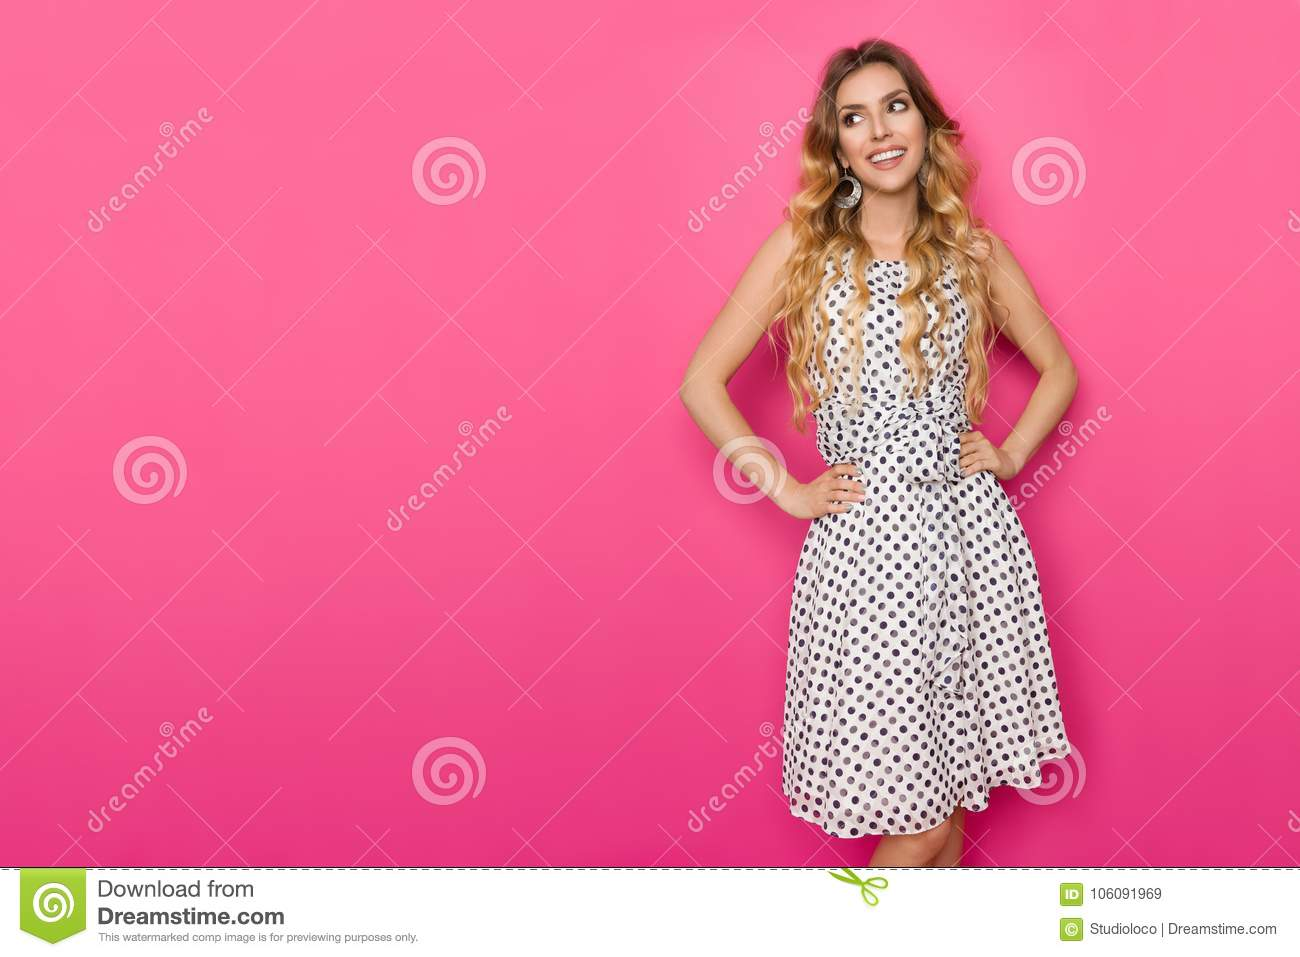 e3621a97bfb8 Beautiful young woman in white dotted summer dress posing with hands on hip